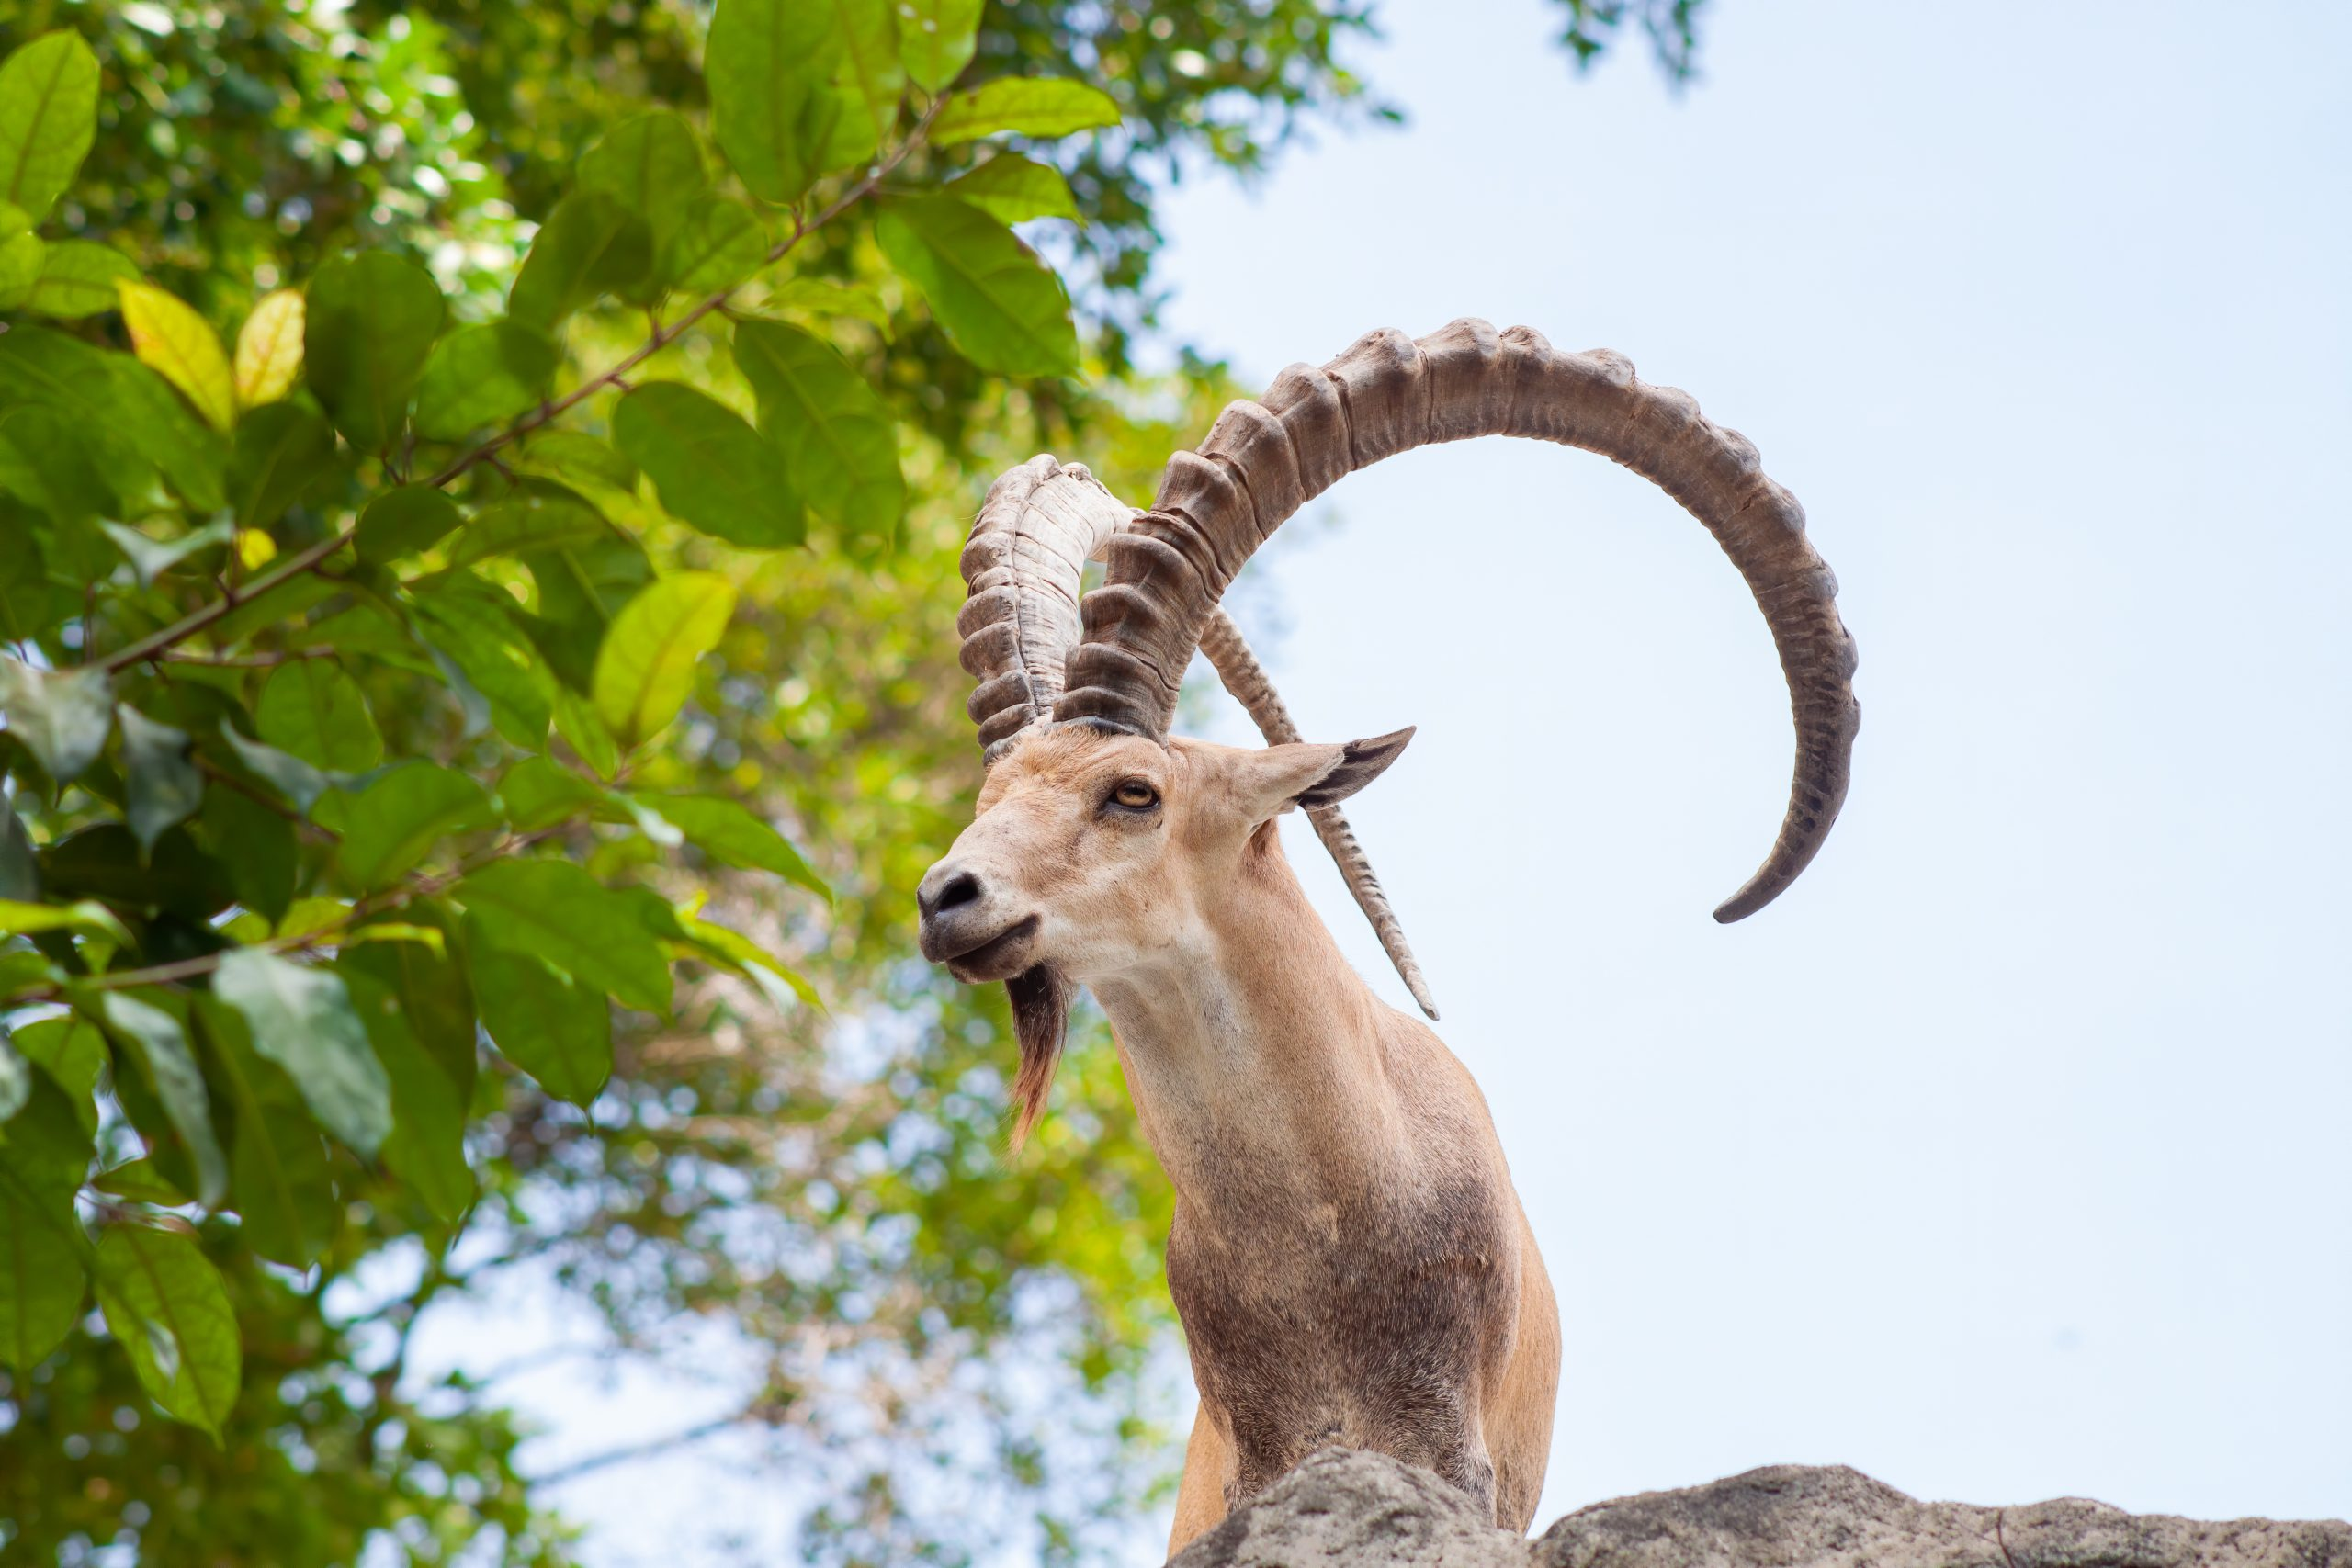 Male Ibex on a cliff showing side profile and full large horns and beard against blue sky.